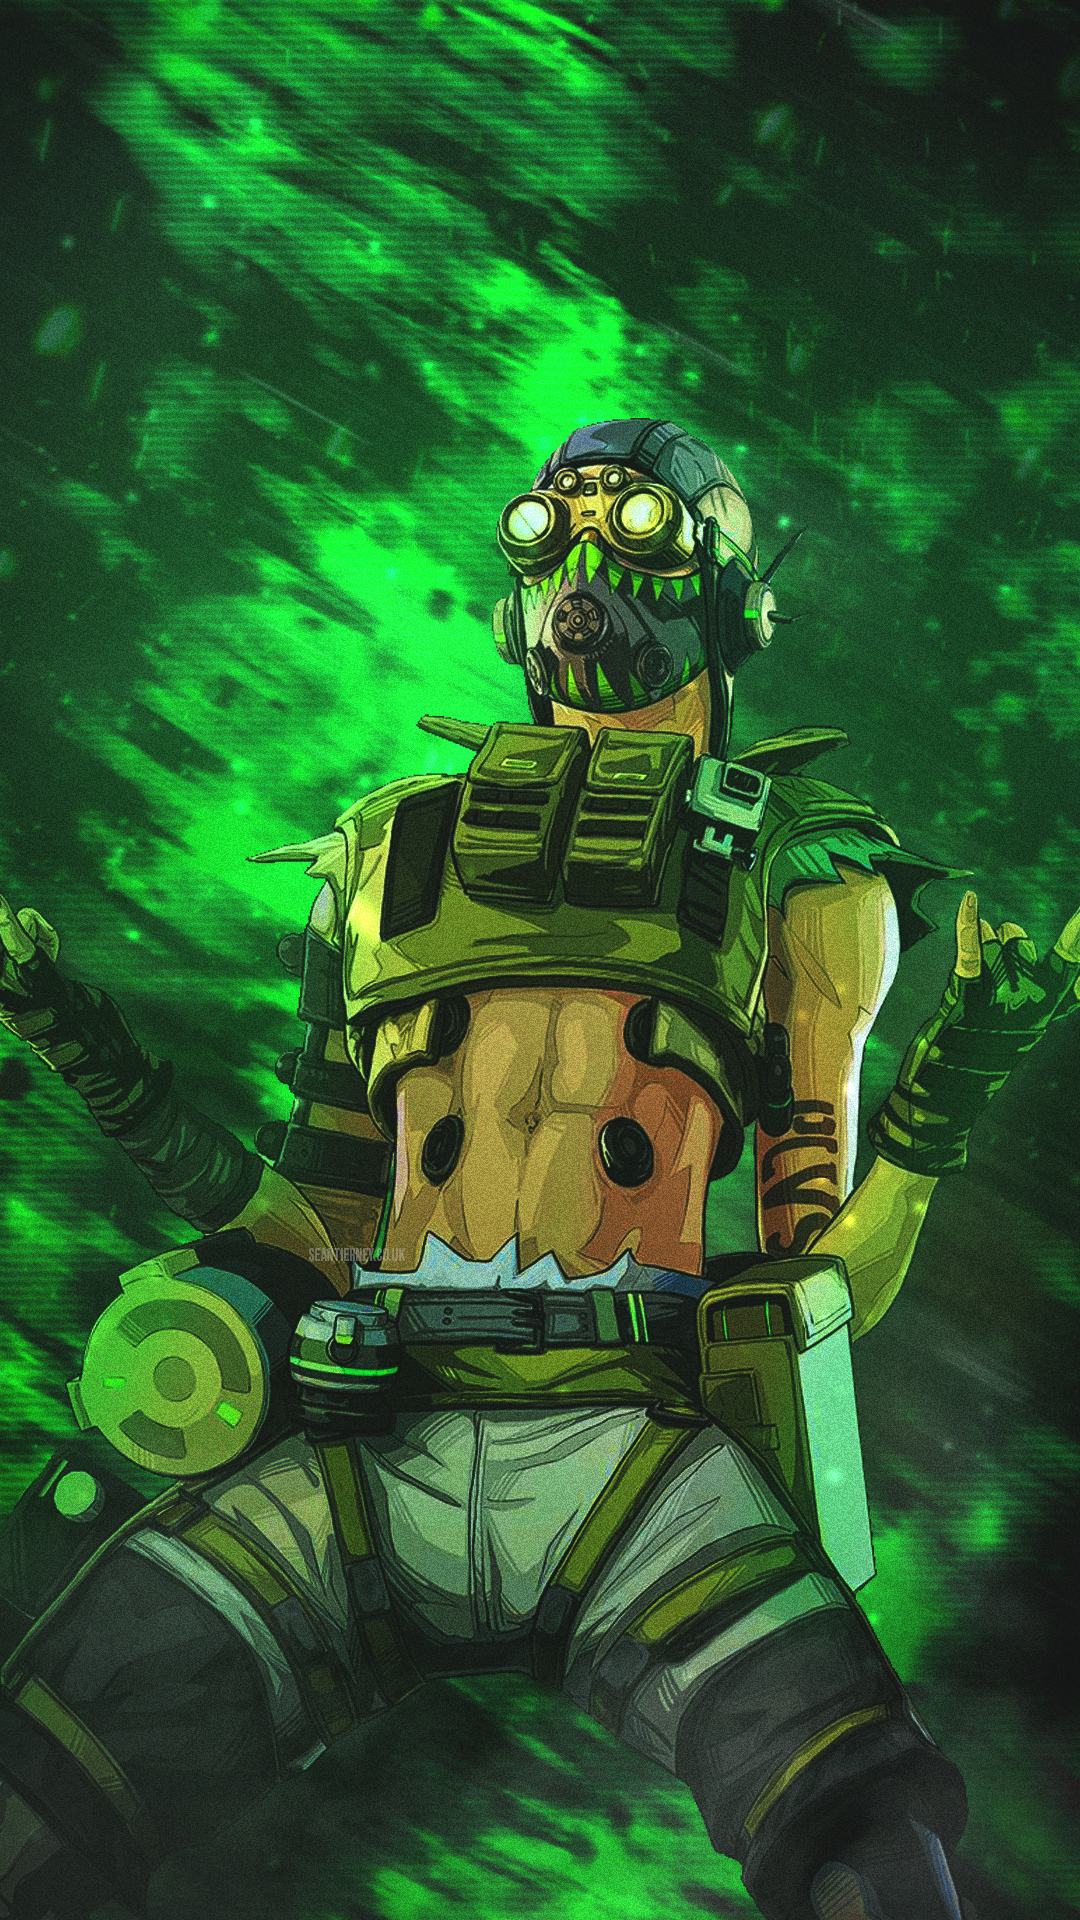 APEX LEGENDS WALLPAPERS FOR MOBILE PHONE